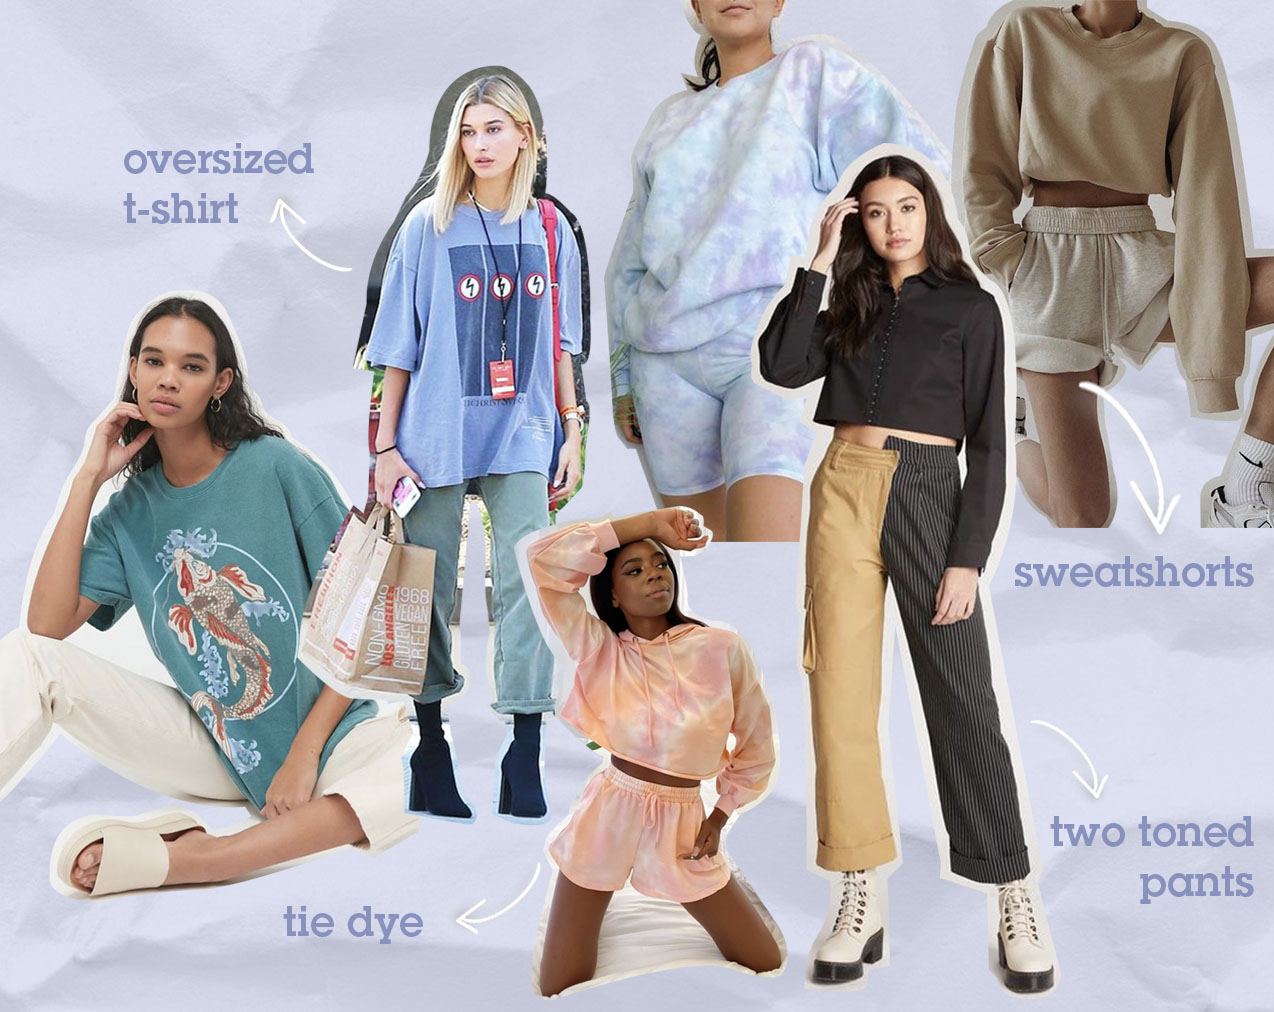 Collage featuring photographs of popular fashion trends, including oversized tees, tie dye and sweat shorts.